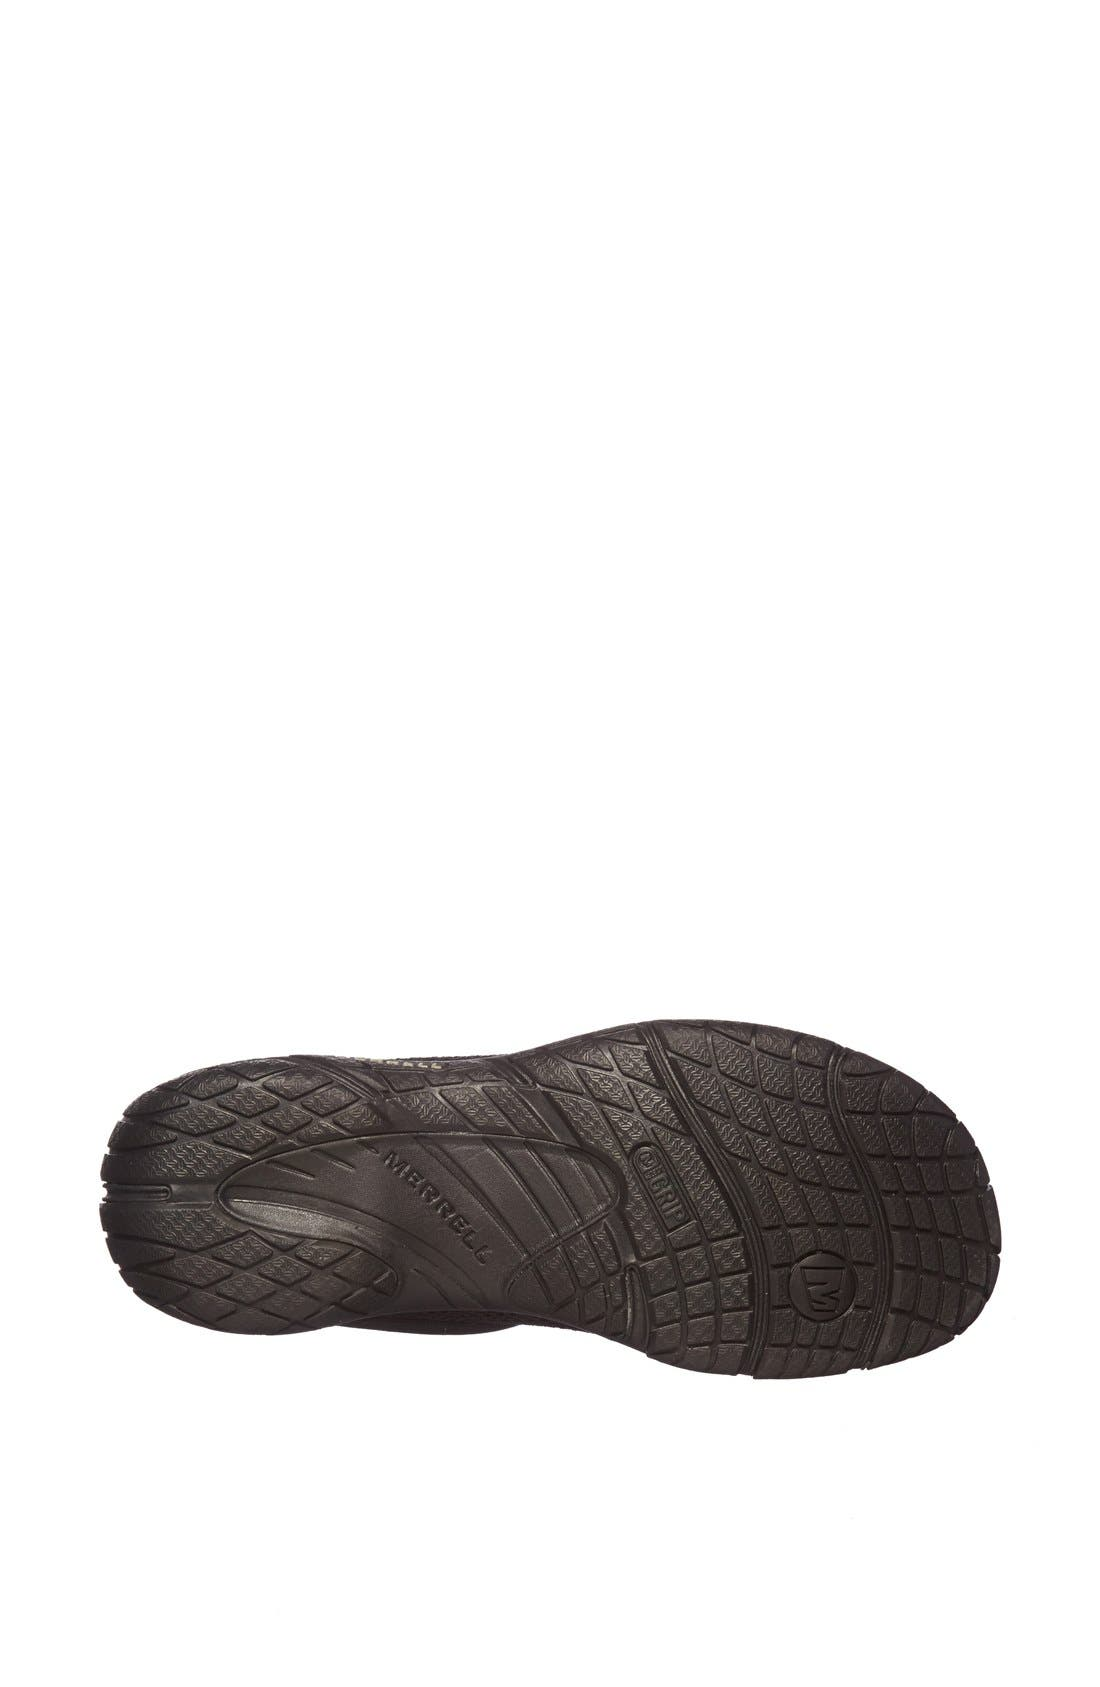 'Encore Breeze 3' Mesh Clog,                             Alternate thumbnail 3, color,                             001